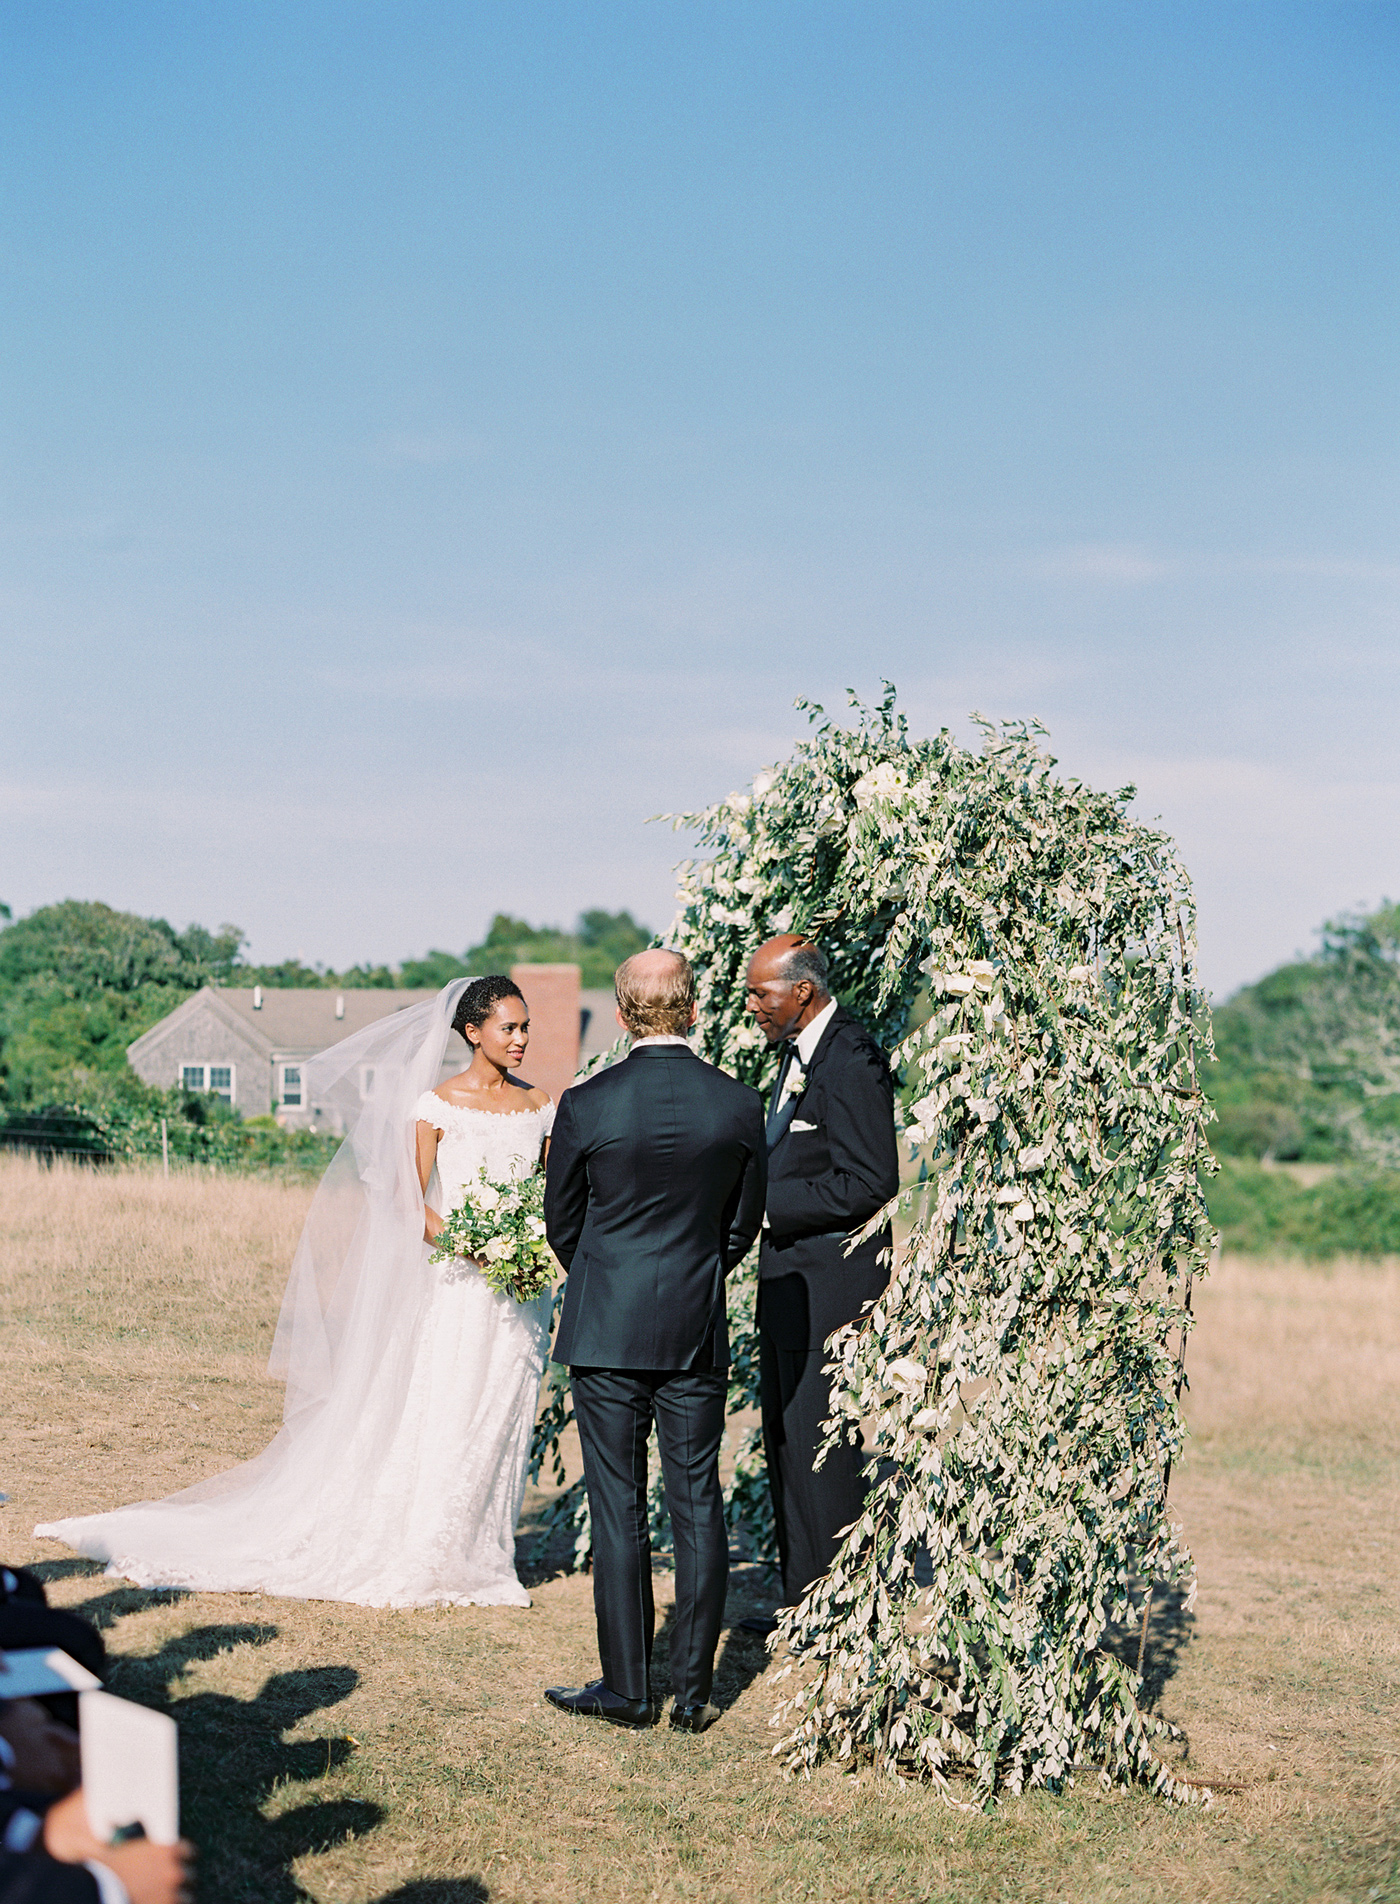 bride and groom next to floral arch outside during wedding ceremony